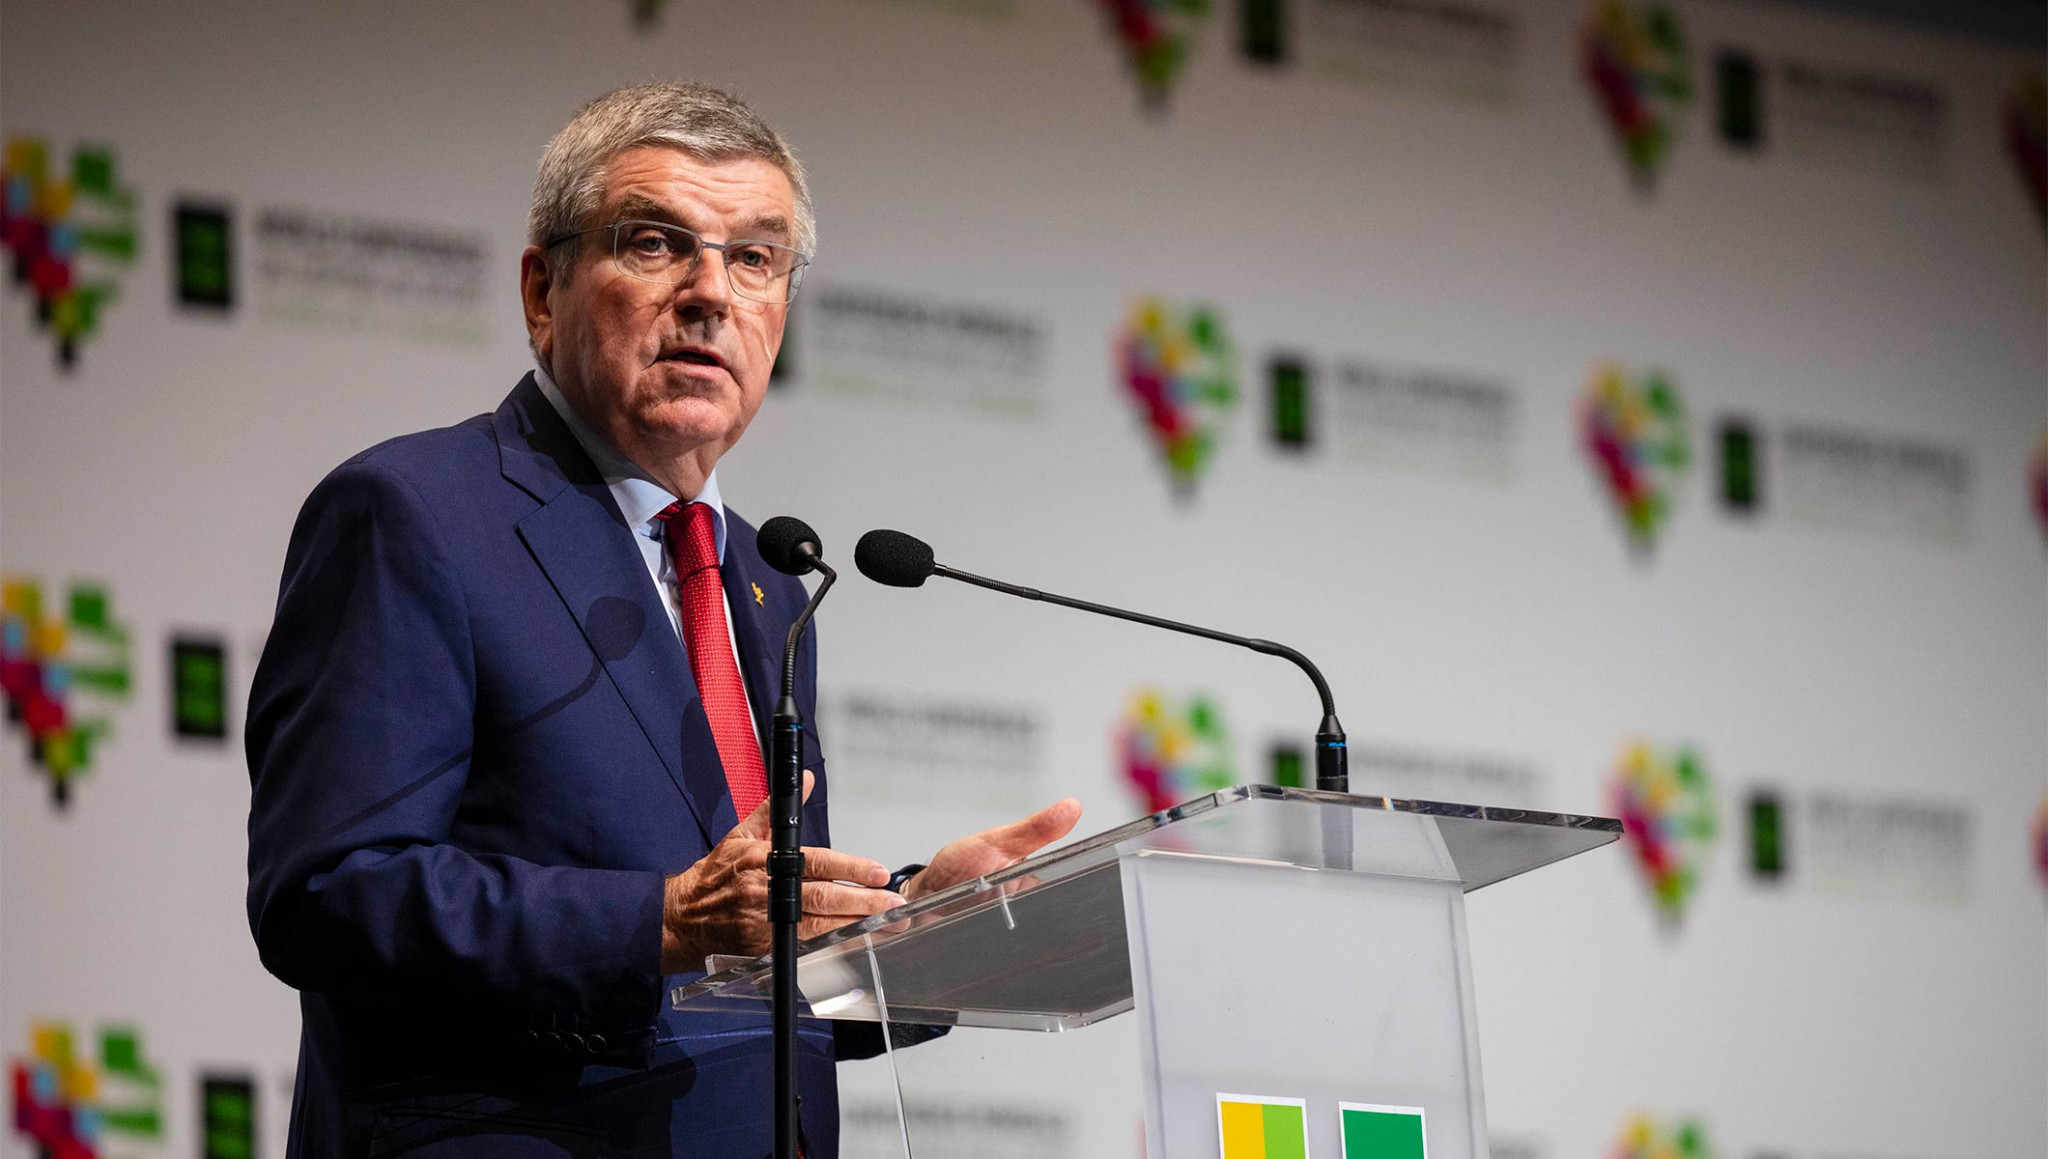 International Olympic Committee President Thomas Bach announced they were giving WADA another $10 million to help fight doping ©IOC